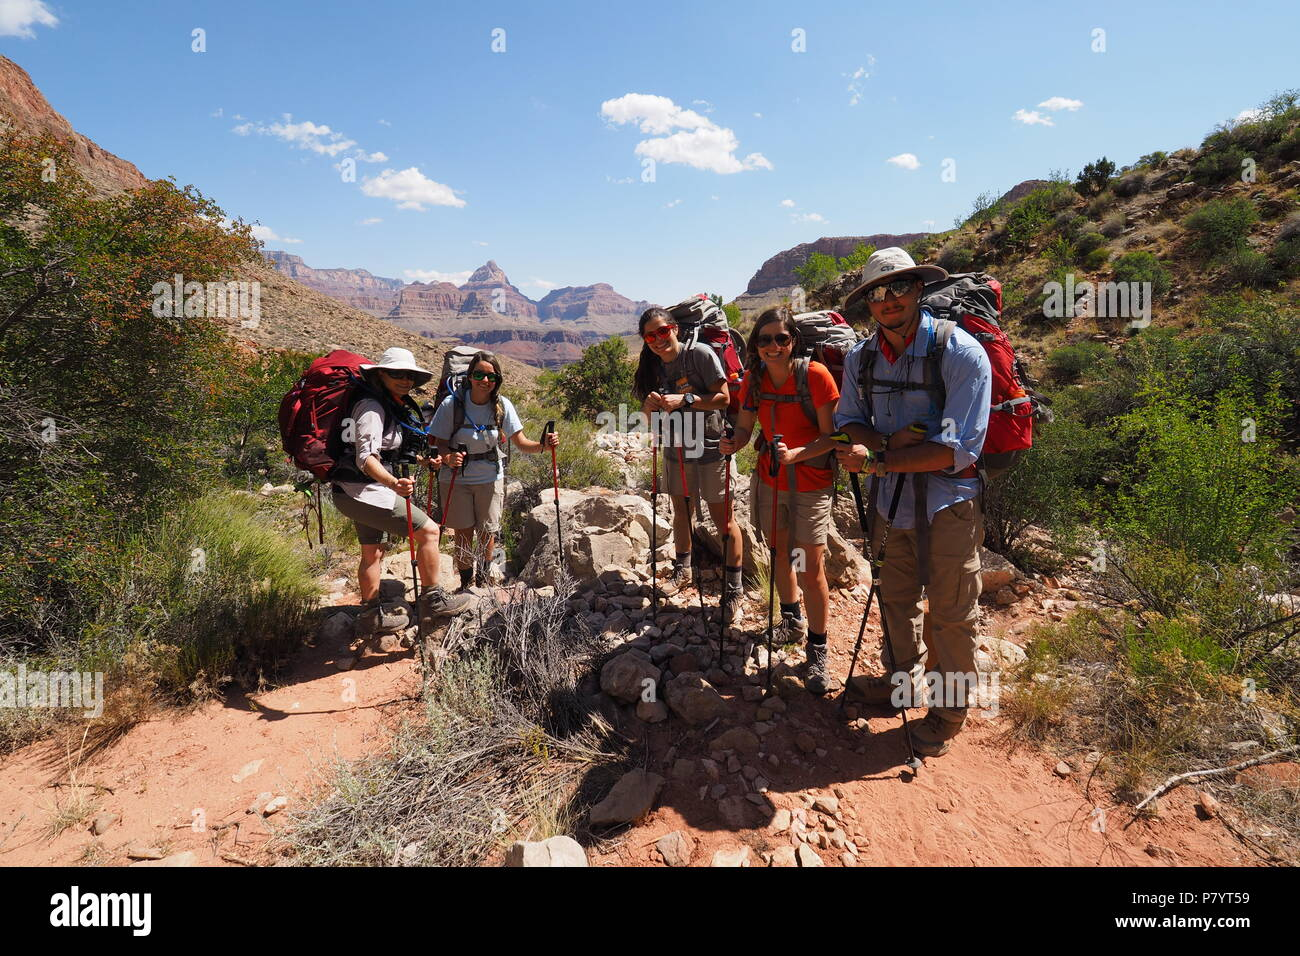 Family stopping for a rest on the Grandview Trail in Grand Canyon National Park, Arizona. - Stock Image